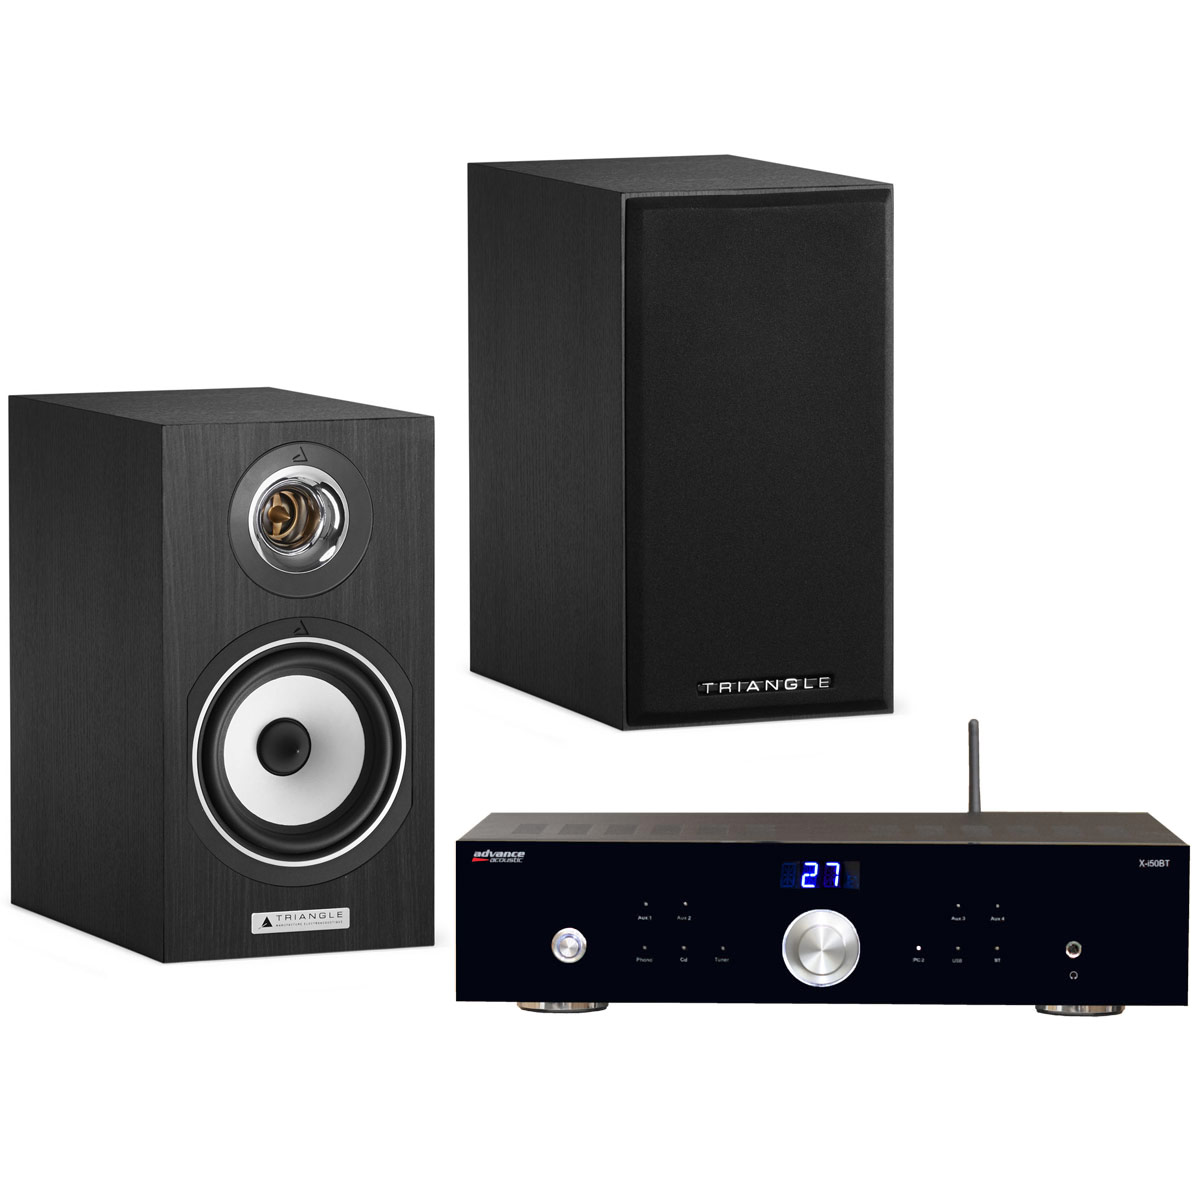 Ensemble Hifi Advance Acoustic X-i50BT + Triangle Titus Ez Black Ash Amplificateur intégré 2 x 50 Watts avec DAC USB et Bluetooth + Enceinte bibliothèque compacte 60 W Bass-Reflex (par paire)